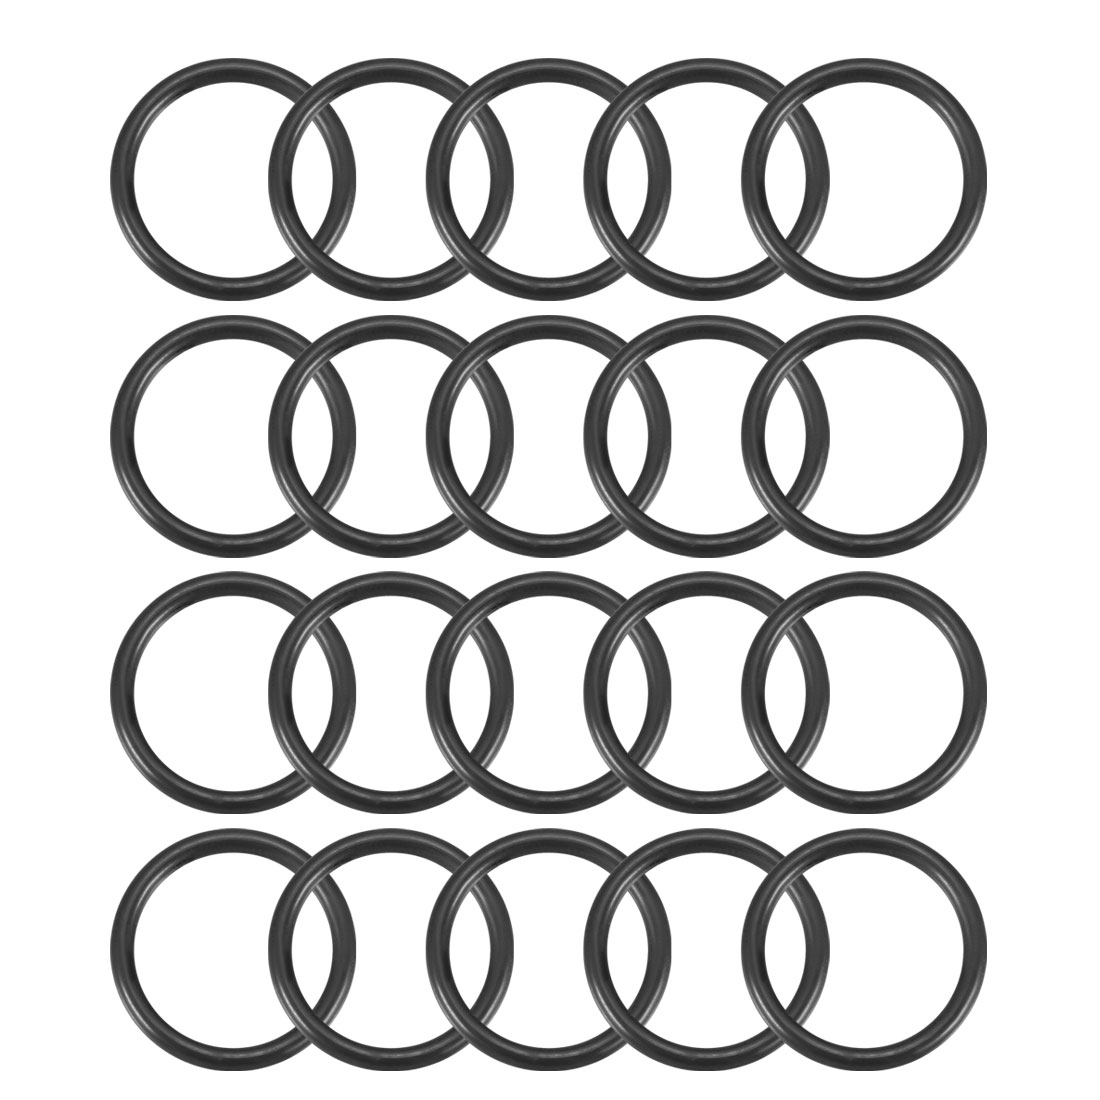 20Pcs Black 18 x 2mm Industrial Flexible Rubber O Ring Oil Sealing Grommets